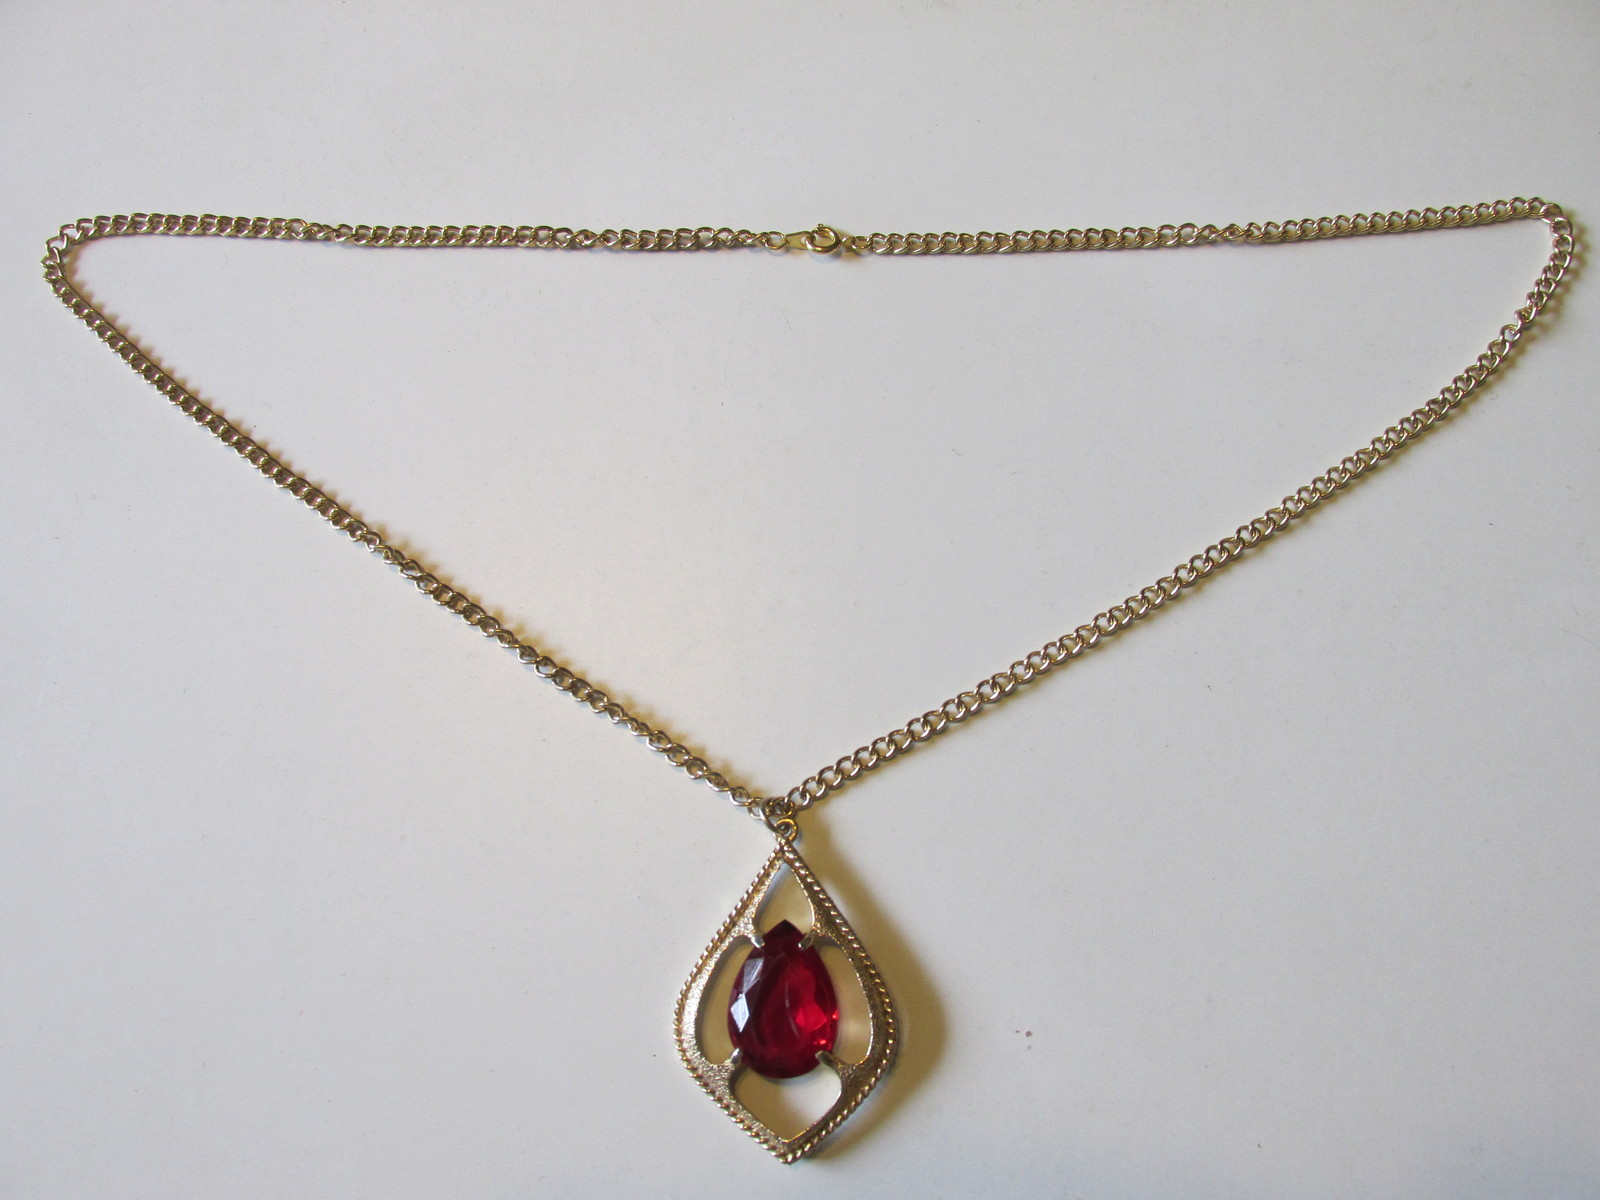 "Vintage Sarah Coventry ""Scarlet Tears"" Pendant Necklace-Faceted, Prong Set, 1974"